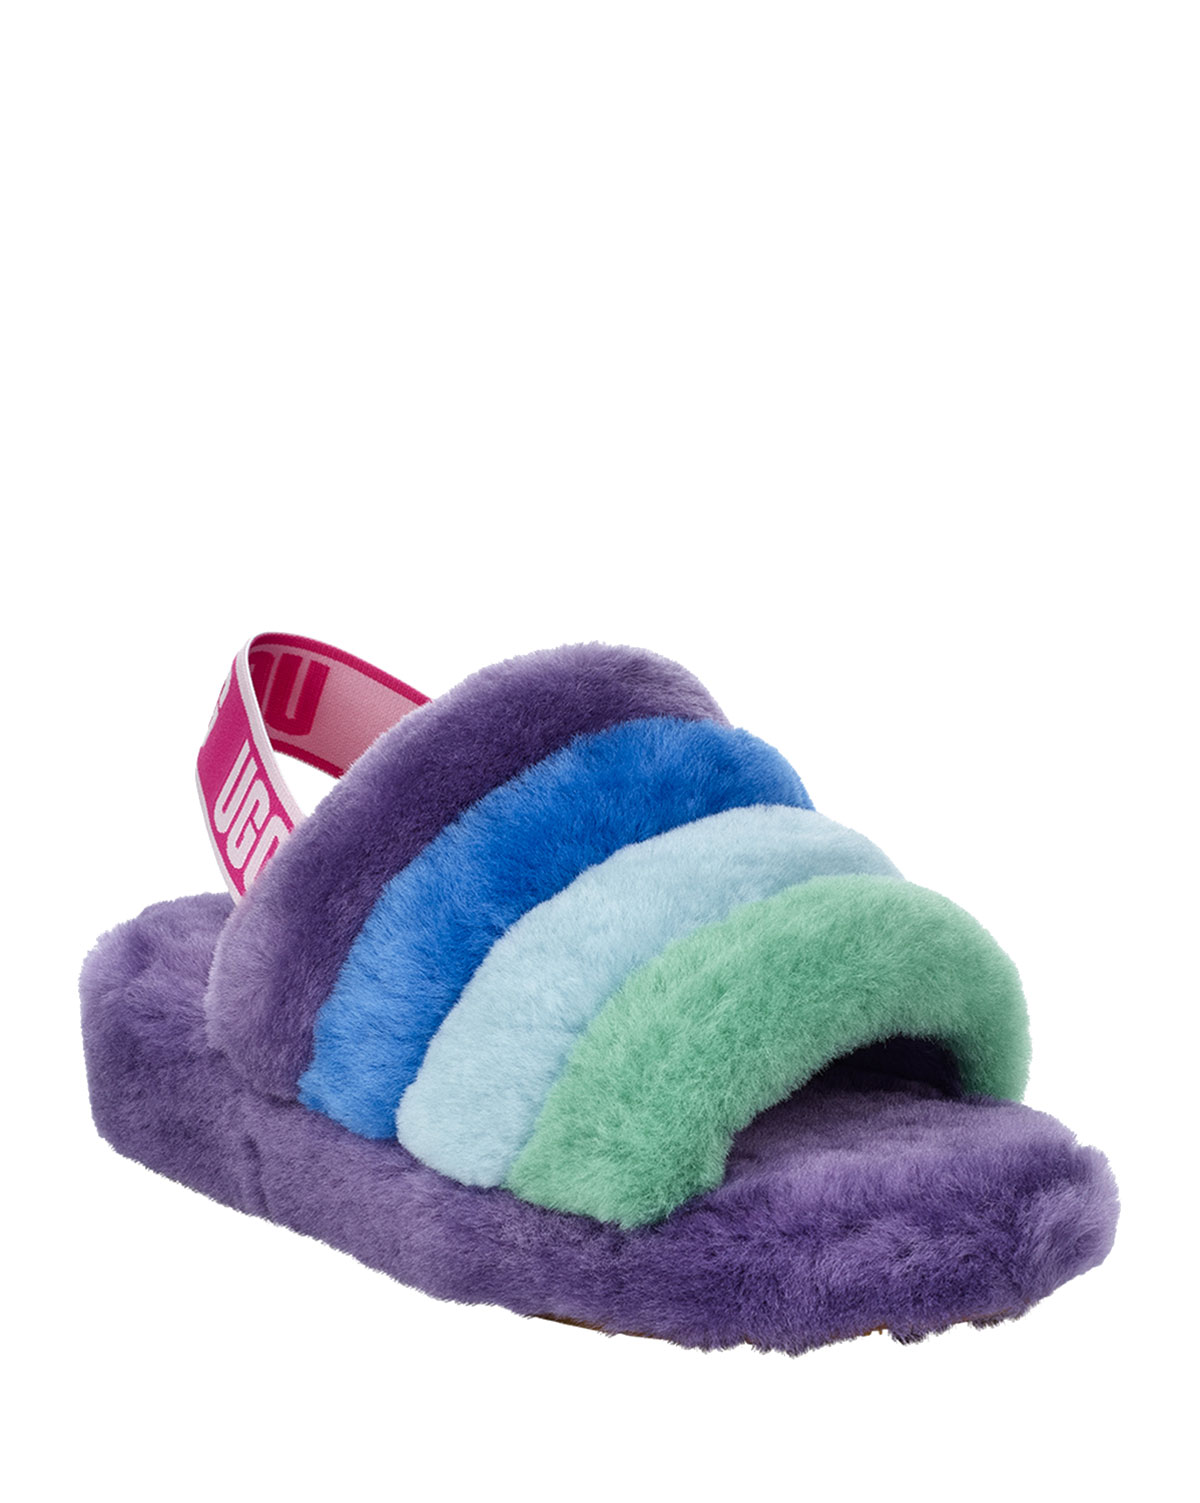 32360f4e0ed x Born This Way Foundation Pride Fluff Yeah Rainbow Shearling Sandal  Slippers